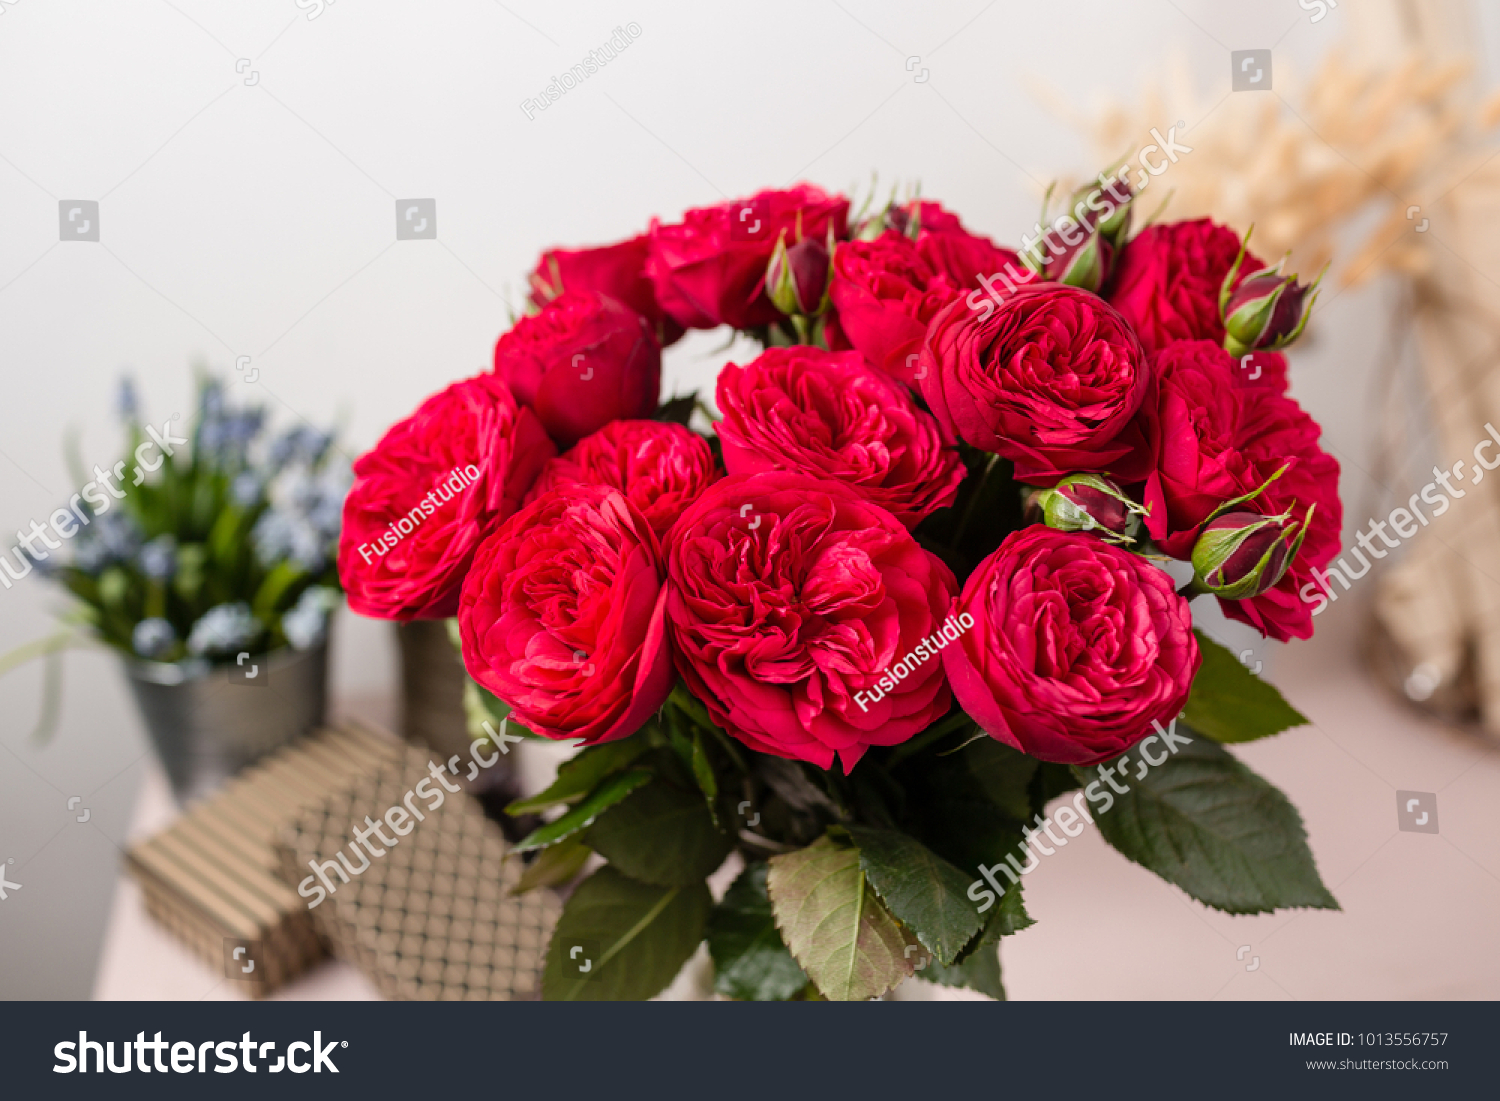 Red garden rose bouquet flowers of roses in glass vase shabby chic id 1013556757 izmirmasajfo